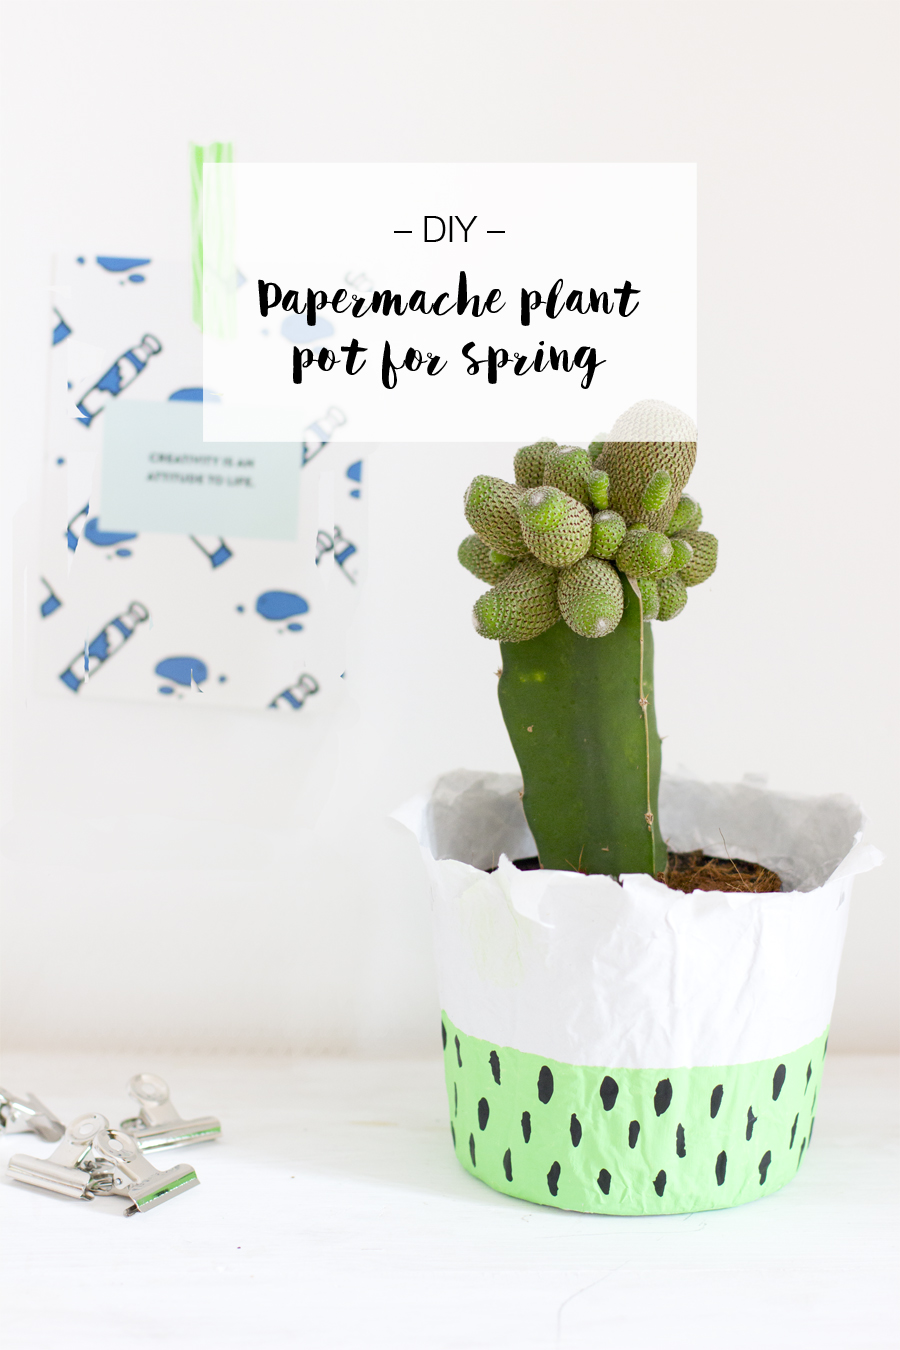 DIY paper mache planter | LOOK WHAT I MADE ...